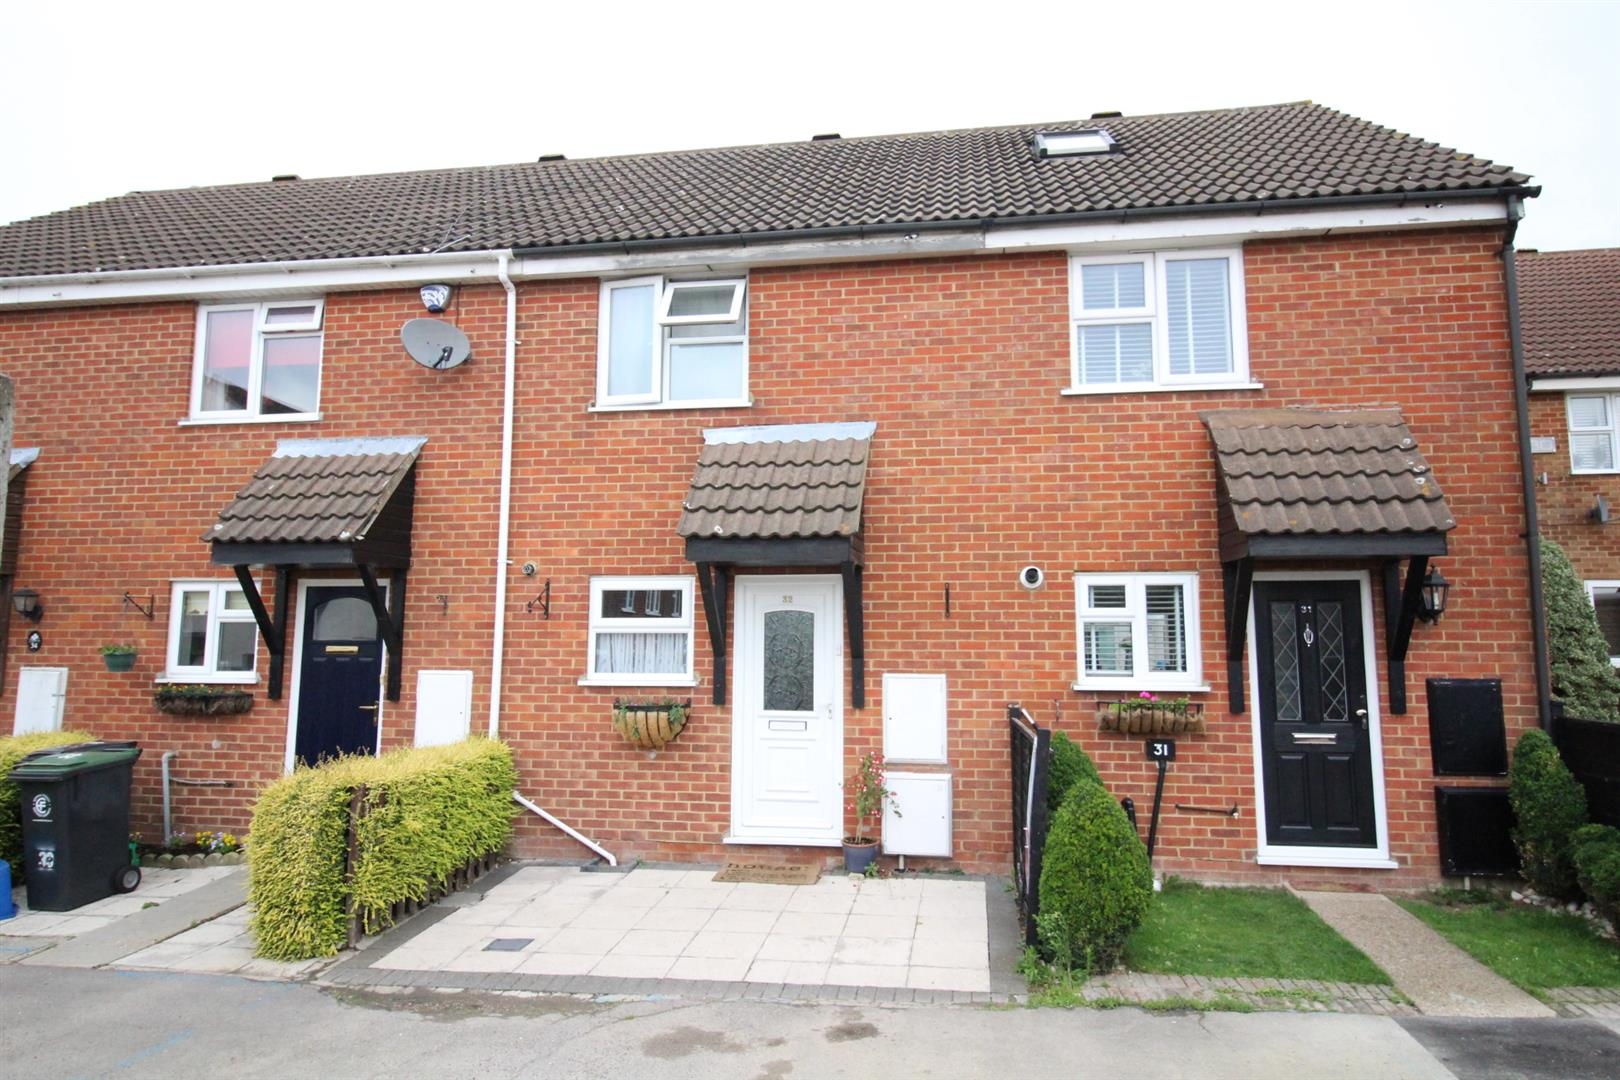 Cunningham Rise, North Weald, Epping